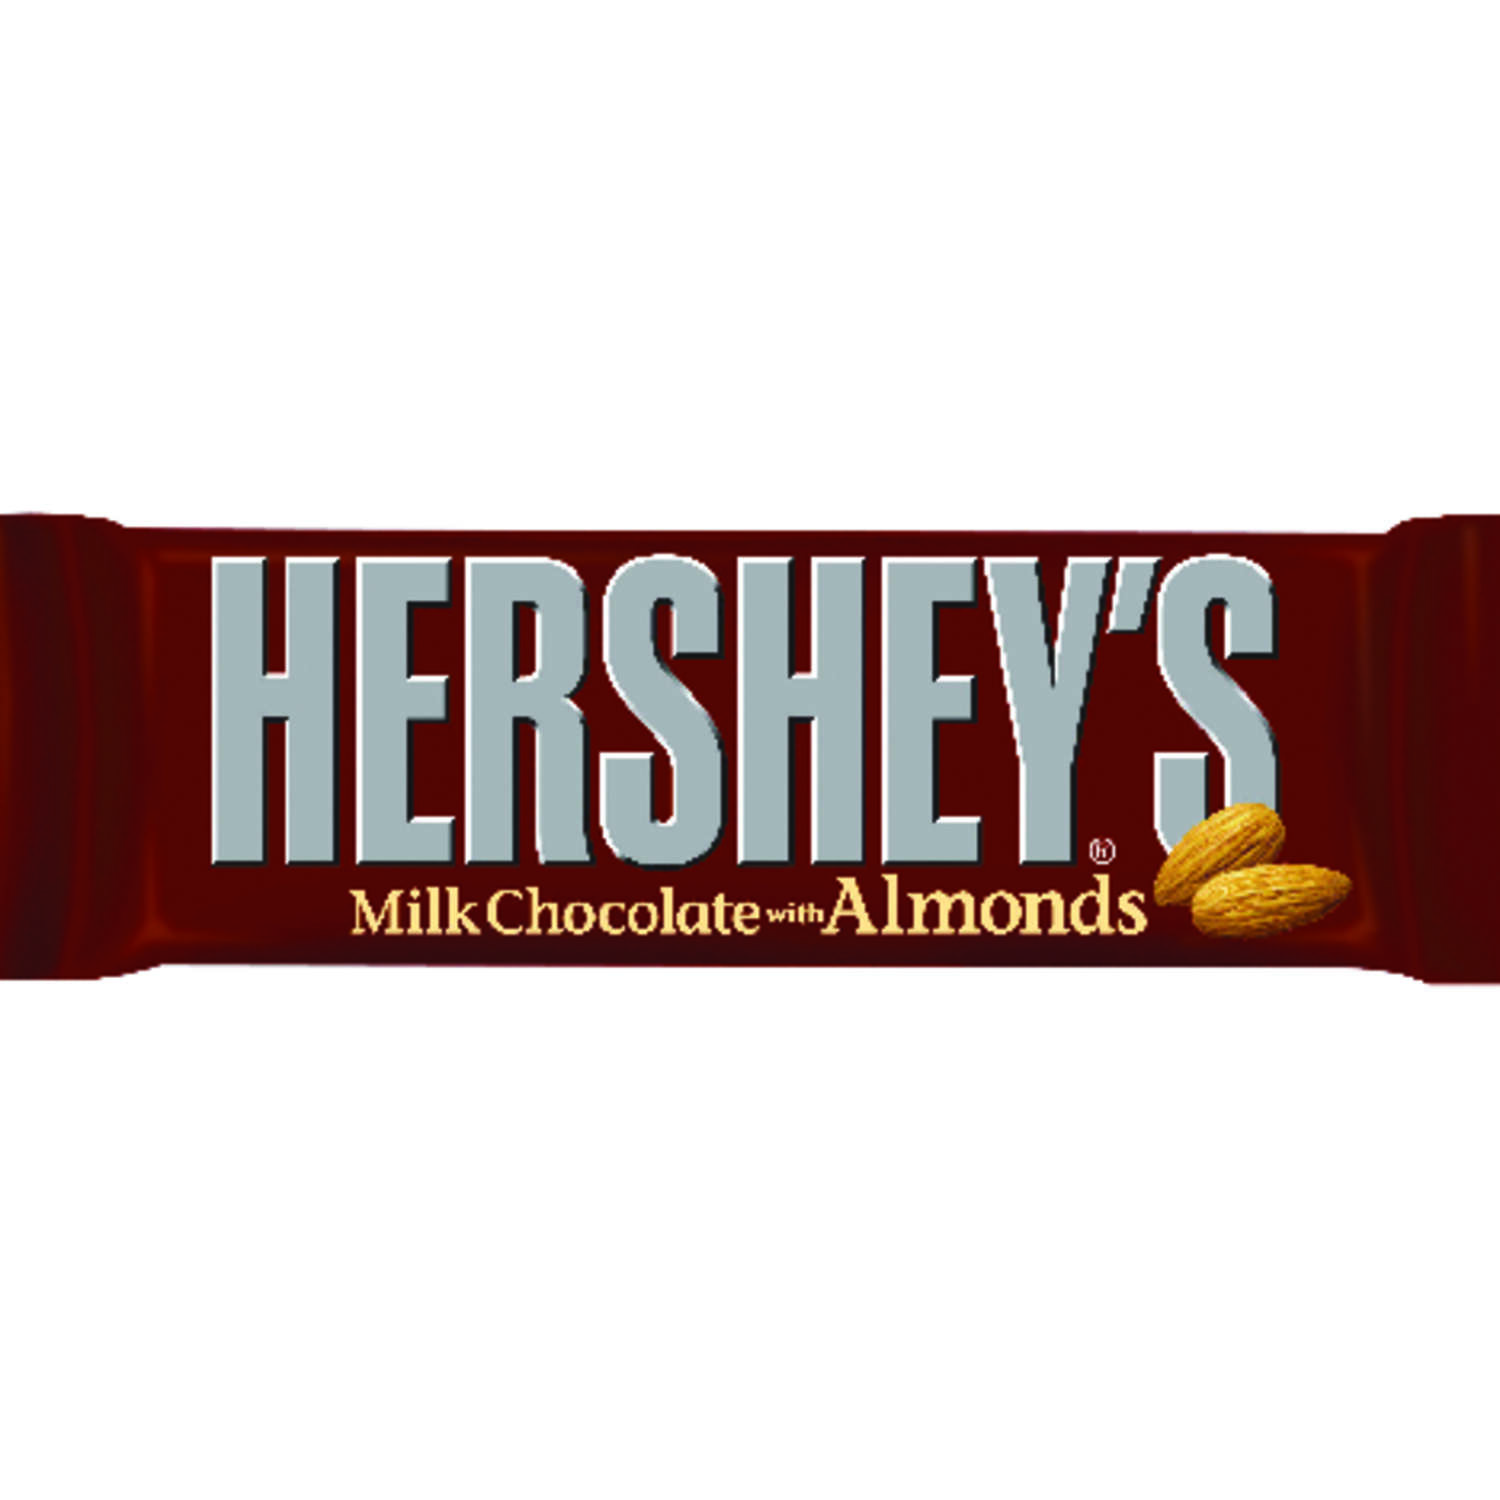 Hershey's  Milk Chocolate with Almonds  Candy Bar  1.45 oz.